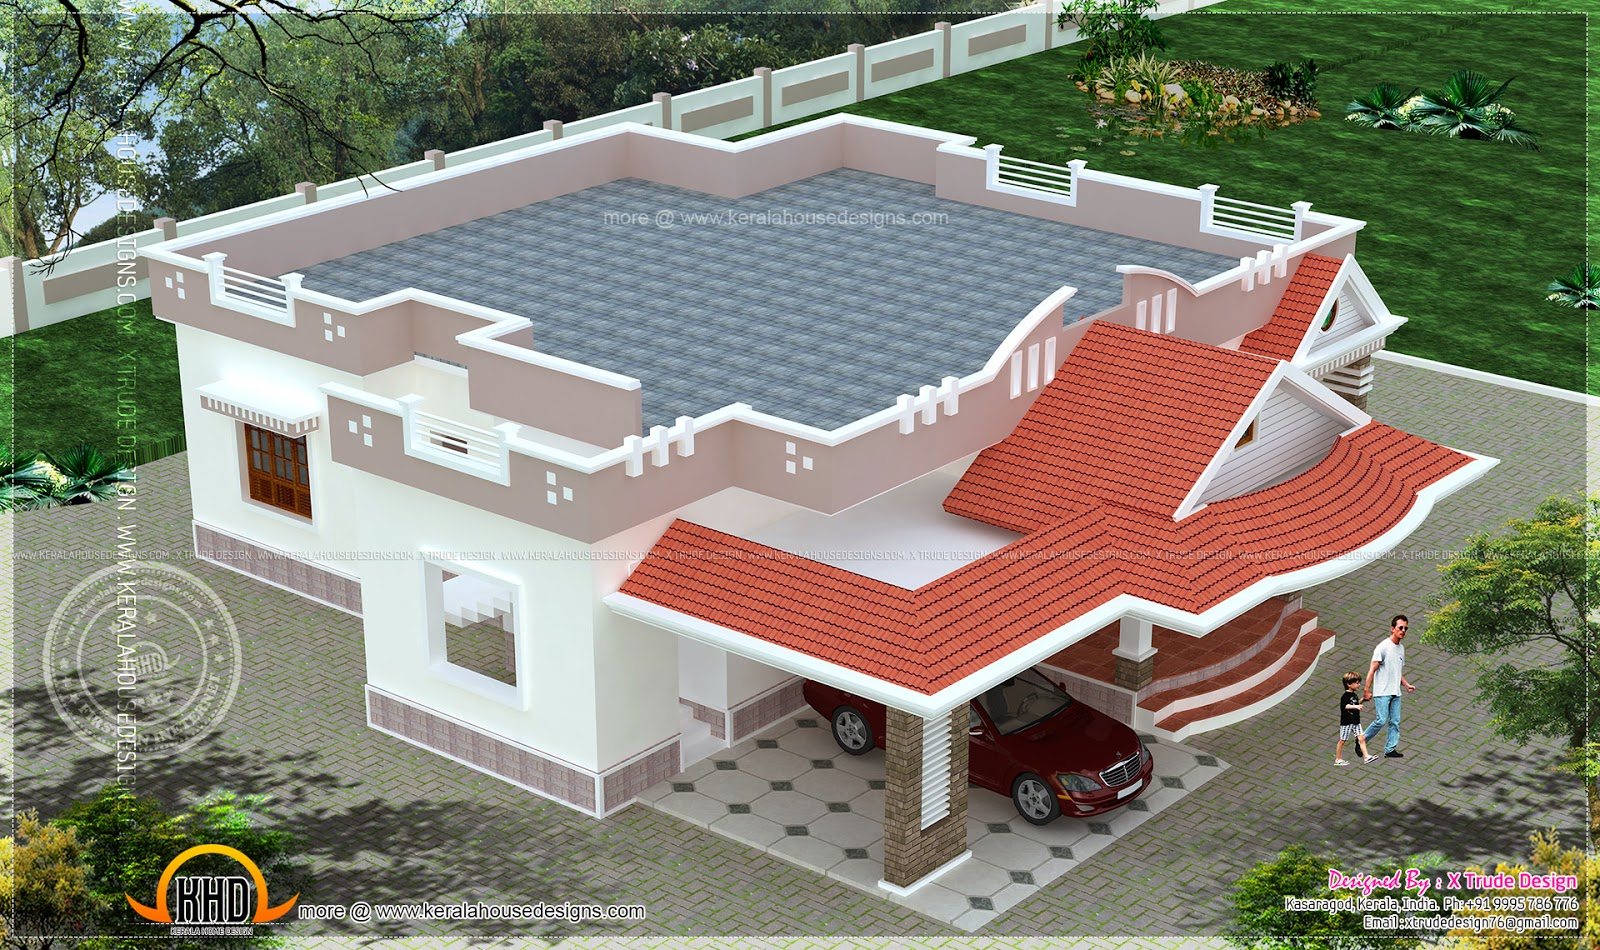 Single storied 2 bedroom house elevation indian house plans for 2 bedroom house designs in india